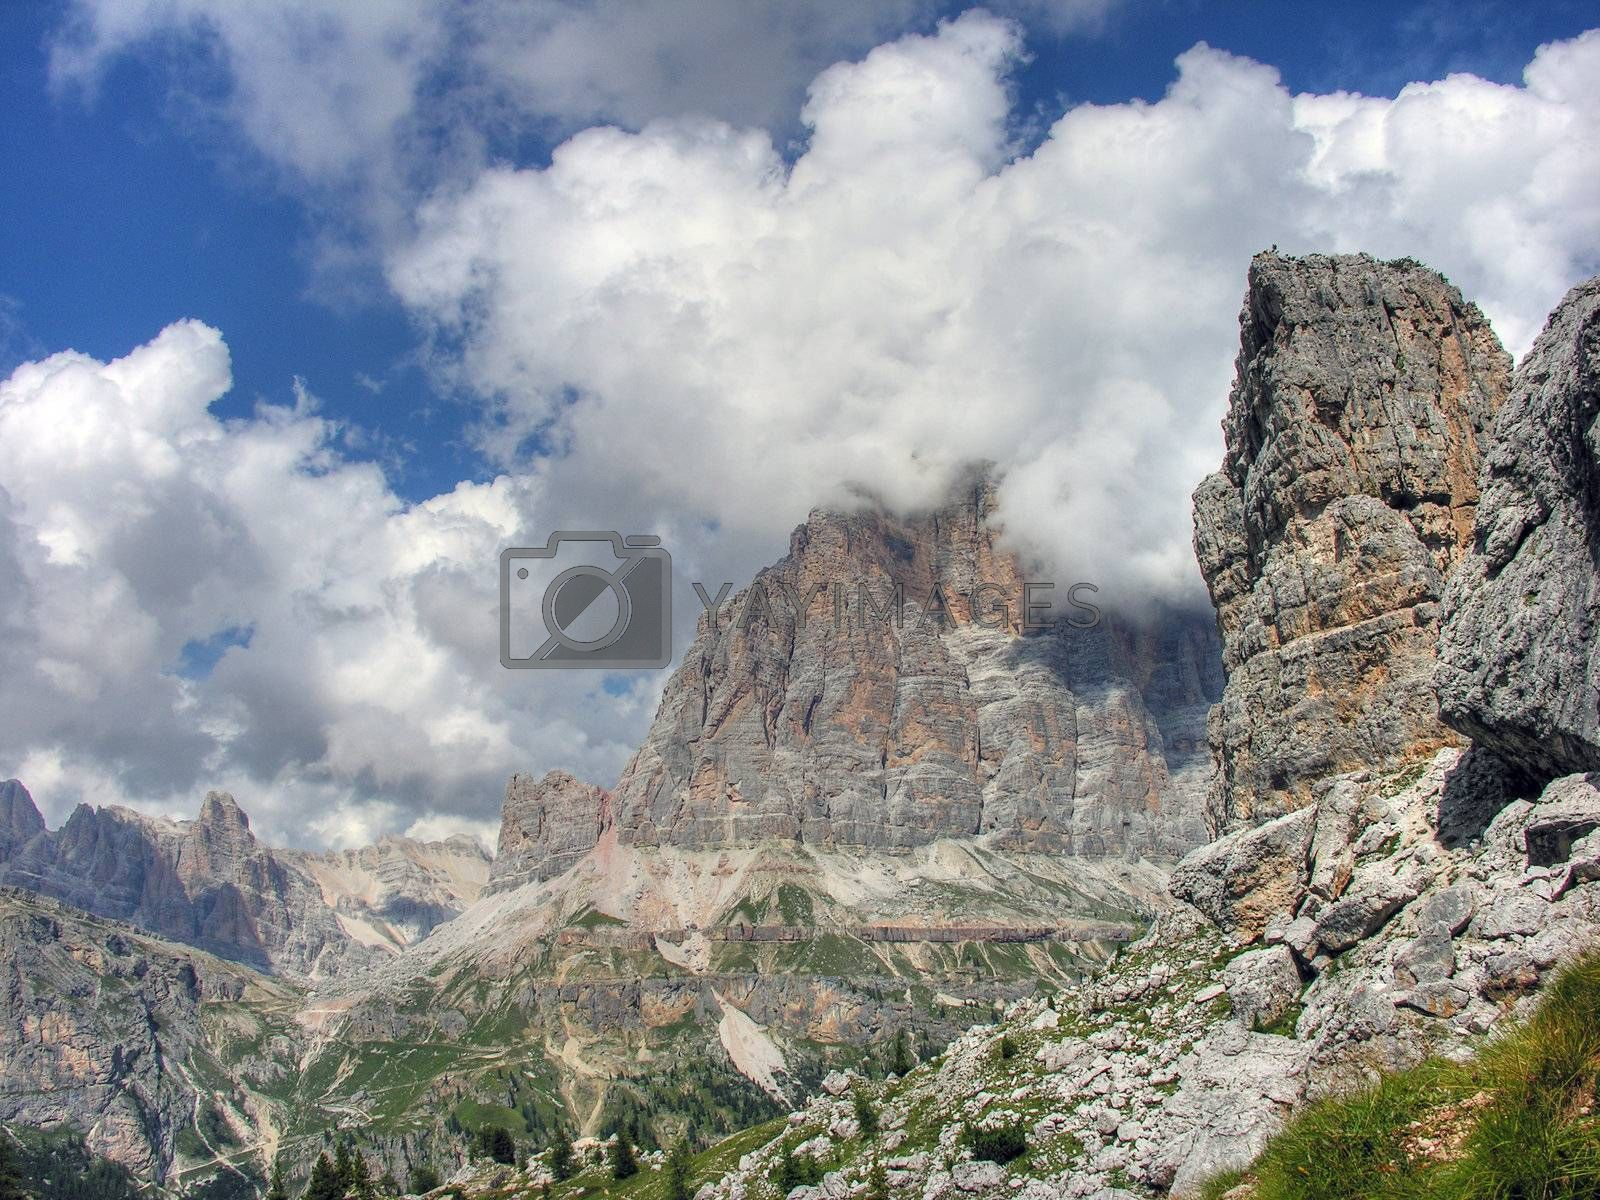 Dolomites Mountains, Italy, Summer 2009 by jovannig